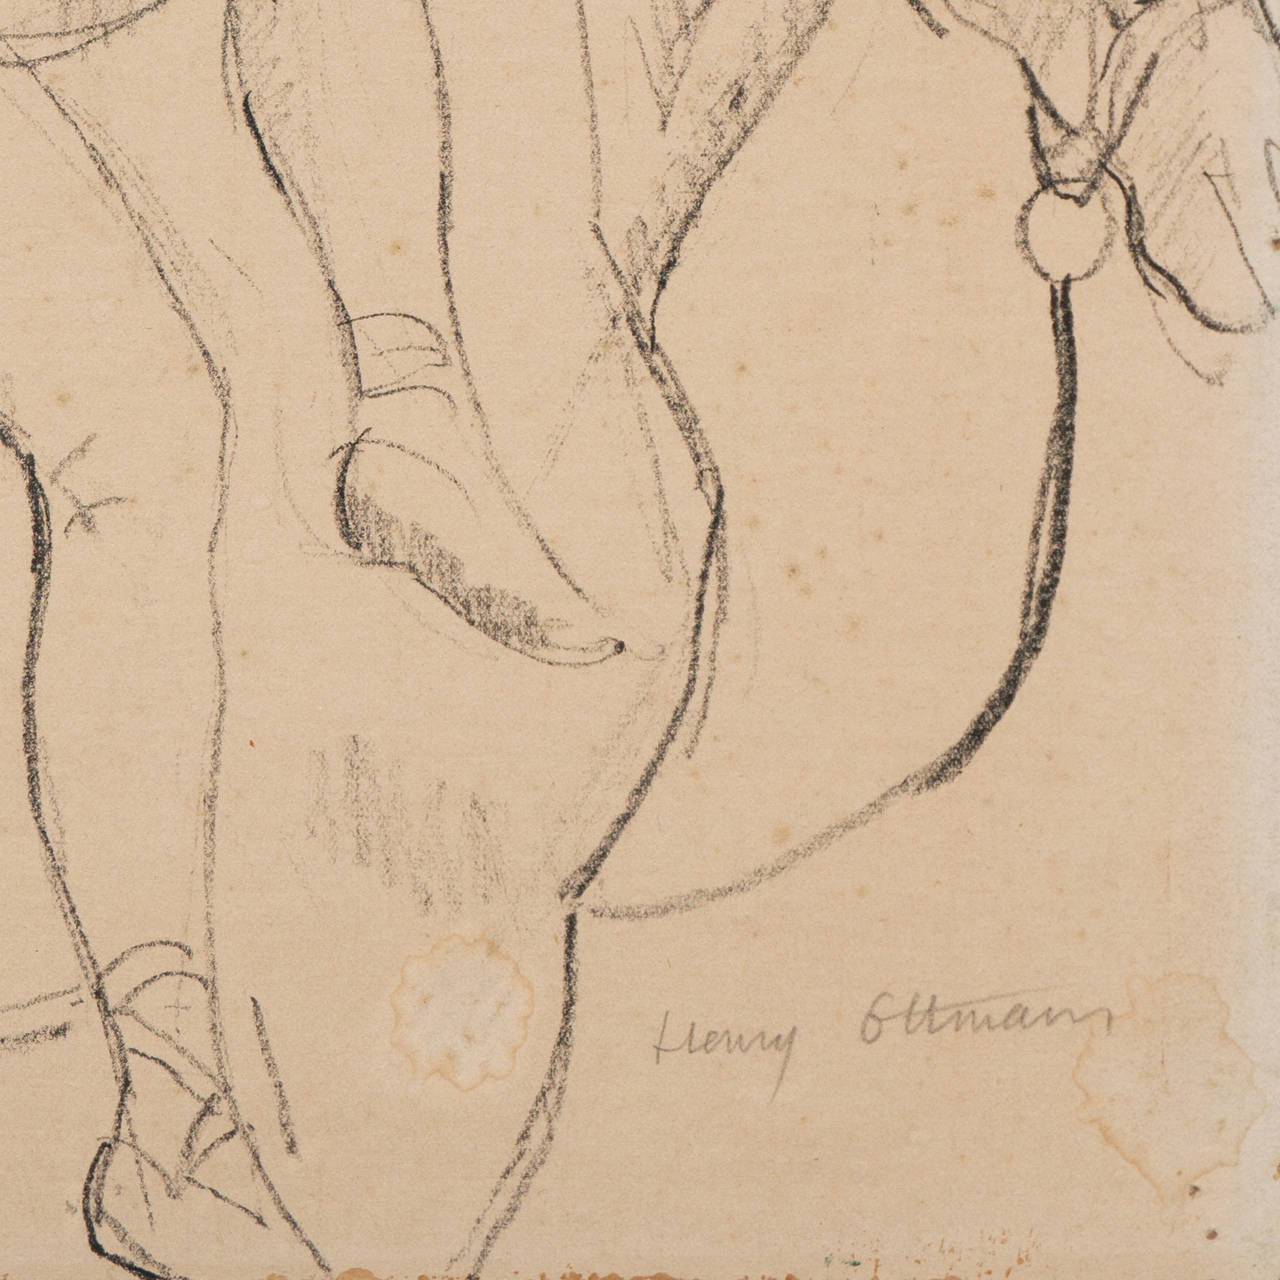 Signed lower right, 'Henry Ottmann' and painted circa 1915.  Born in 1877 in the Loire Valley, Henri Ottmann first exhibited in the Salon de la Libre Esthétique in Brussels in 1904 and, beginning in 1905, at the Salon d'Automne, the Société